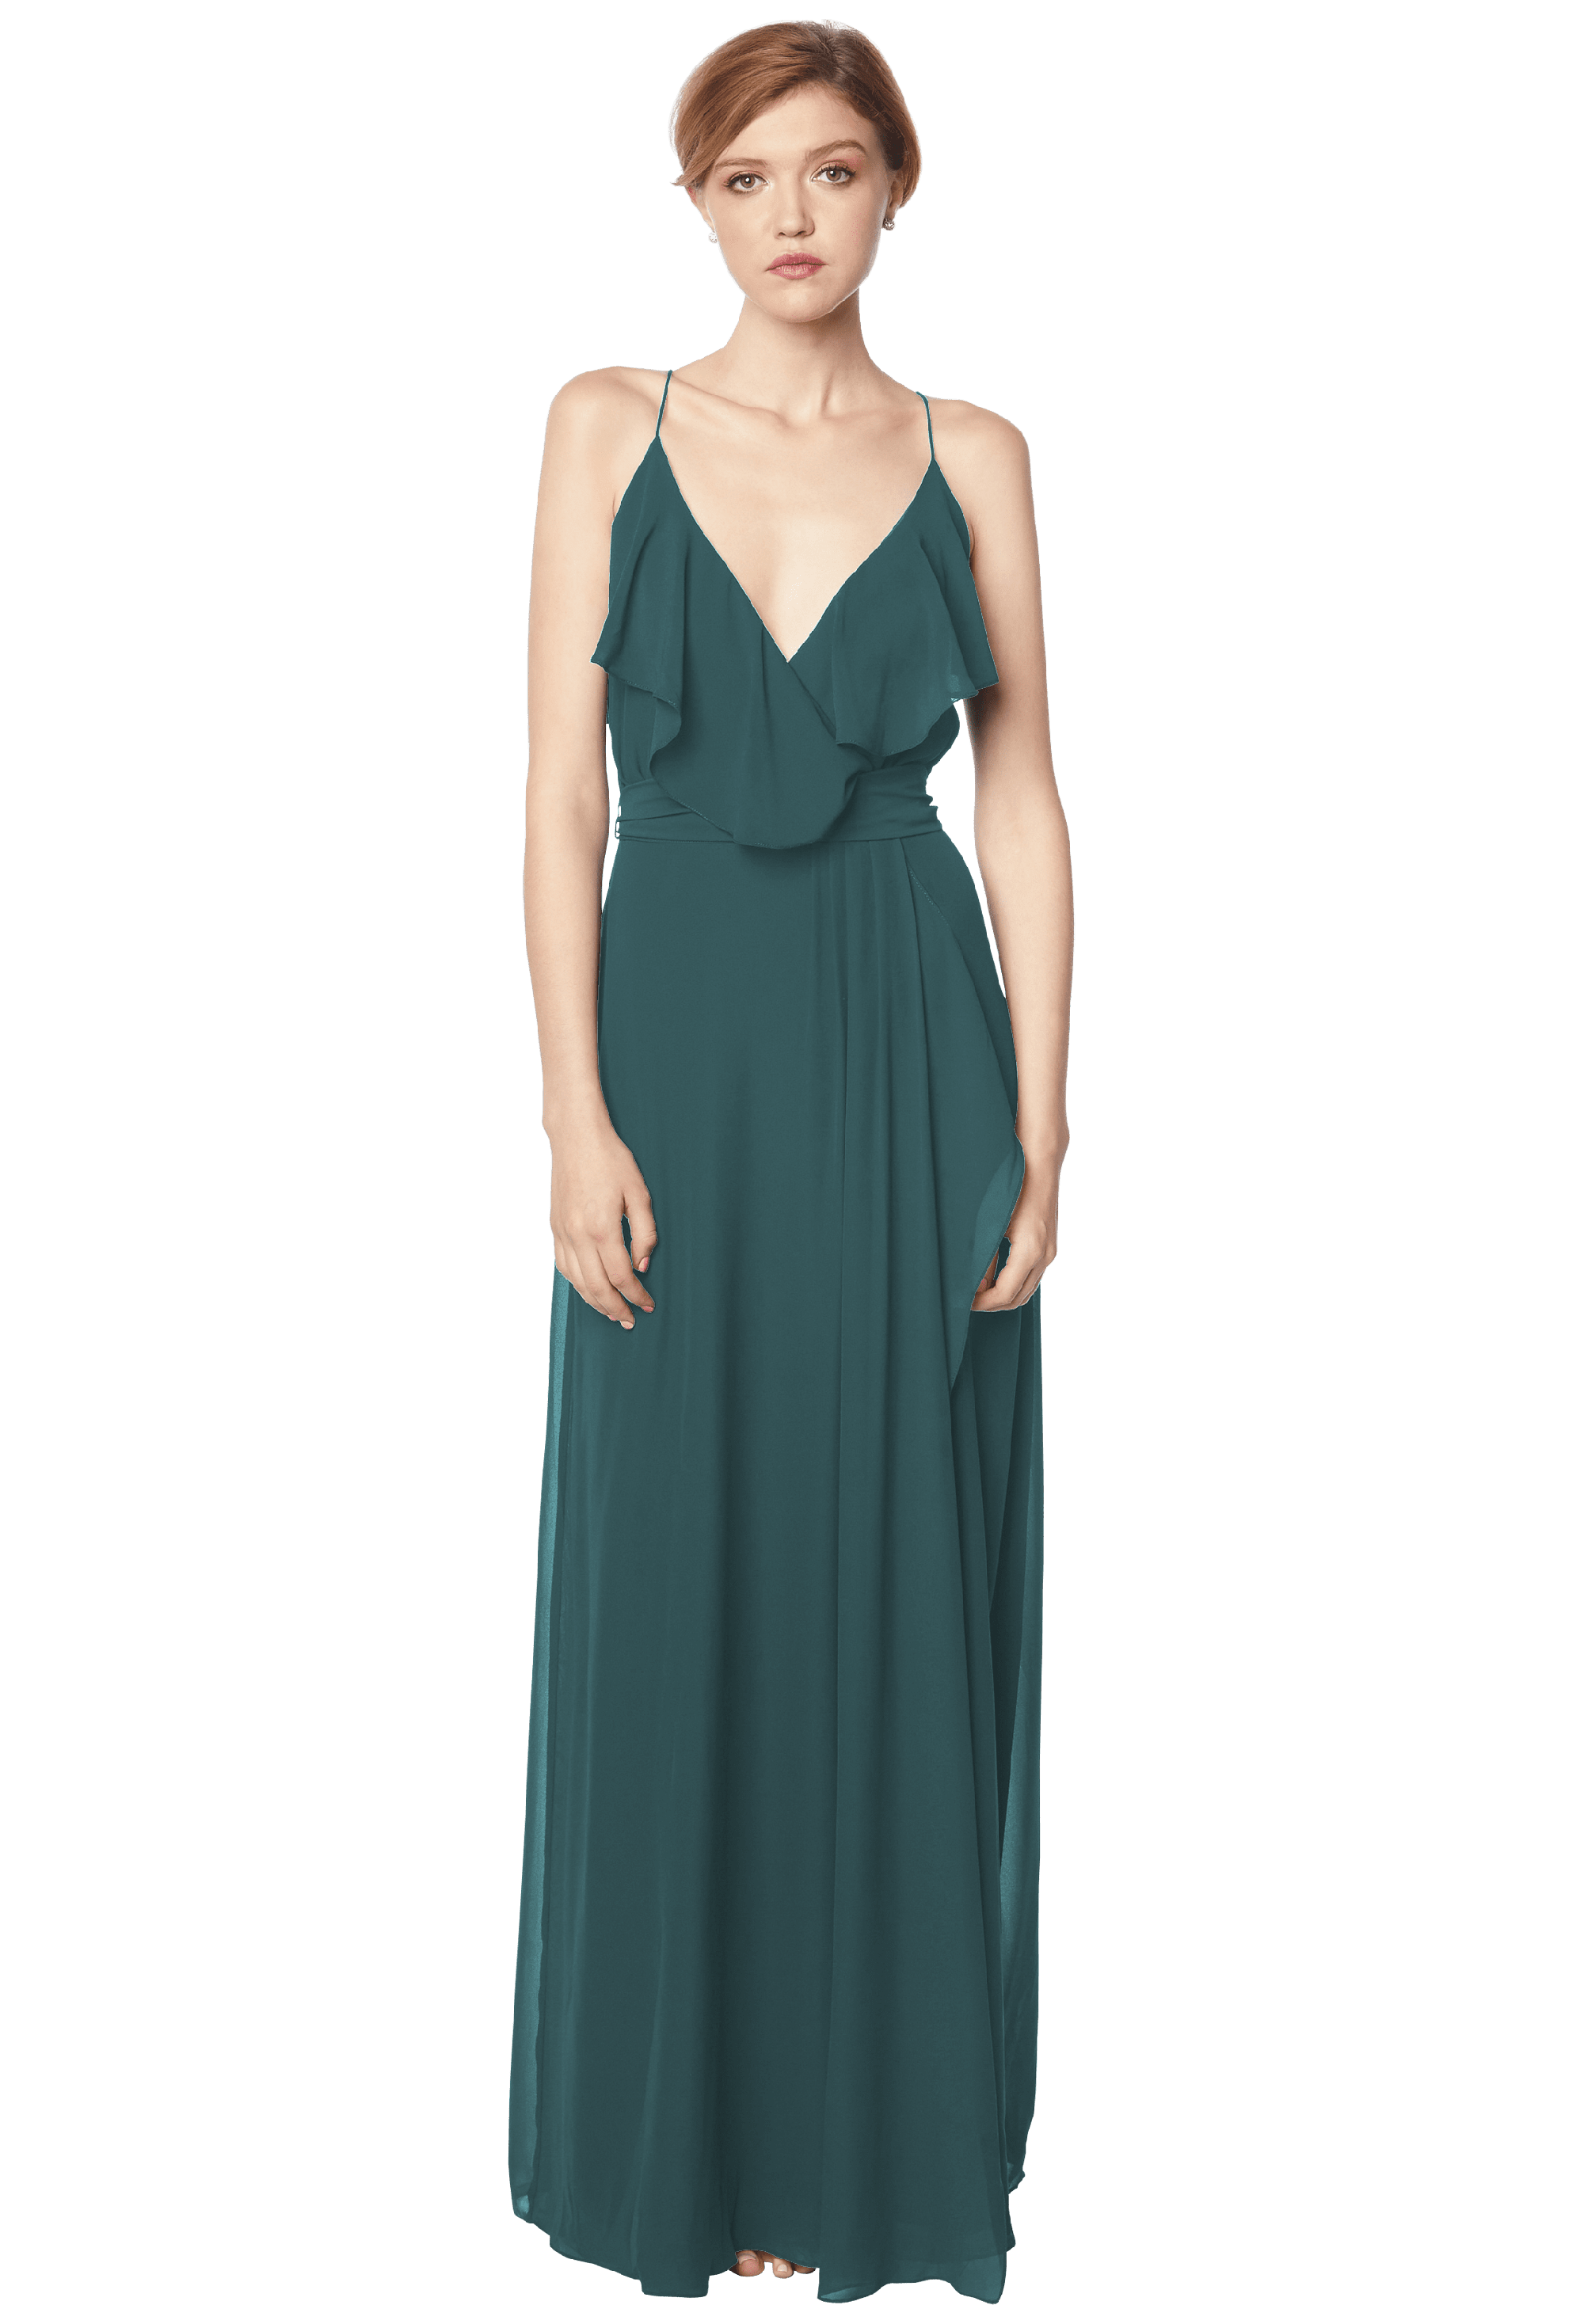 Bill Levkoff EVERGREEN Chiffon V-neck A-line gown, $176.00 Front